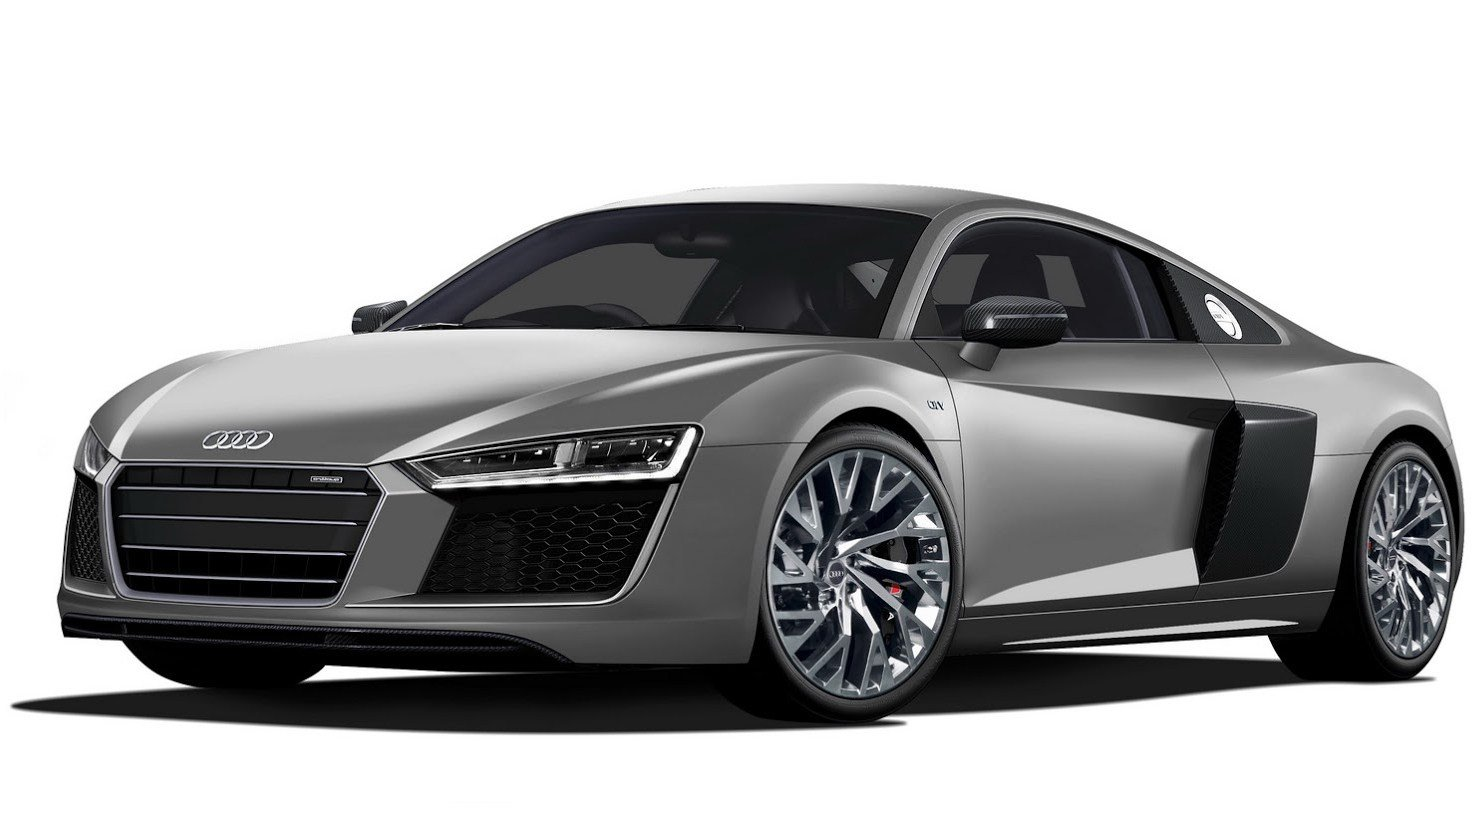 Latest Rent Audi Car Get Best Deals From 40 Day Now With Free Download